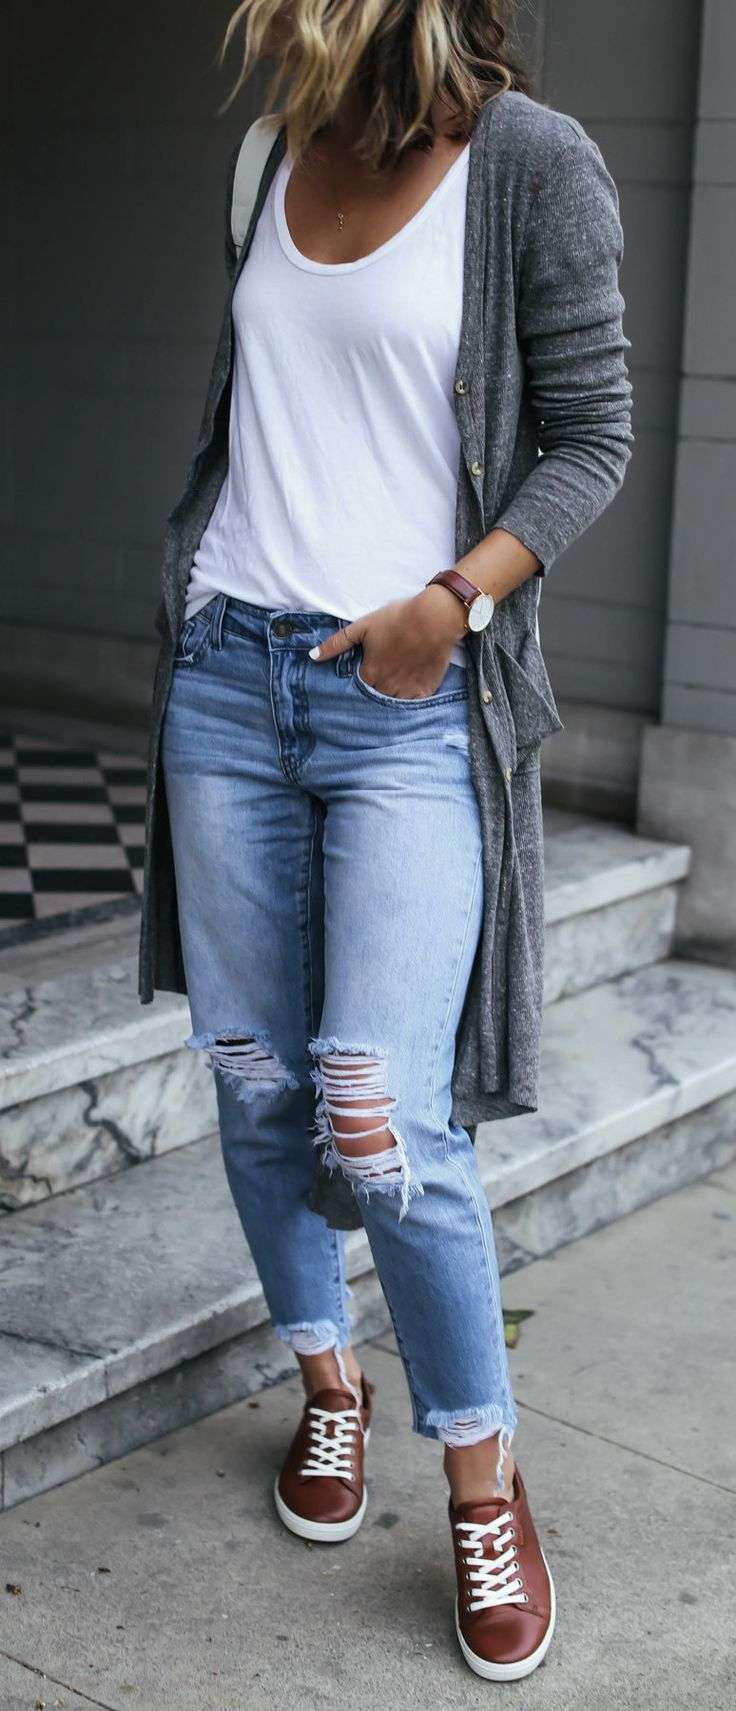 summer outfits Grey Cardigan + White Tee + Ripped Jeans